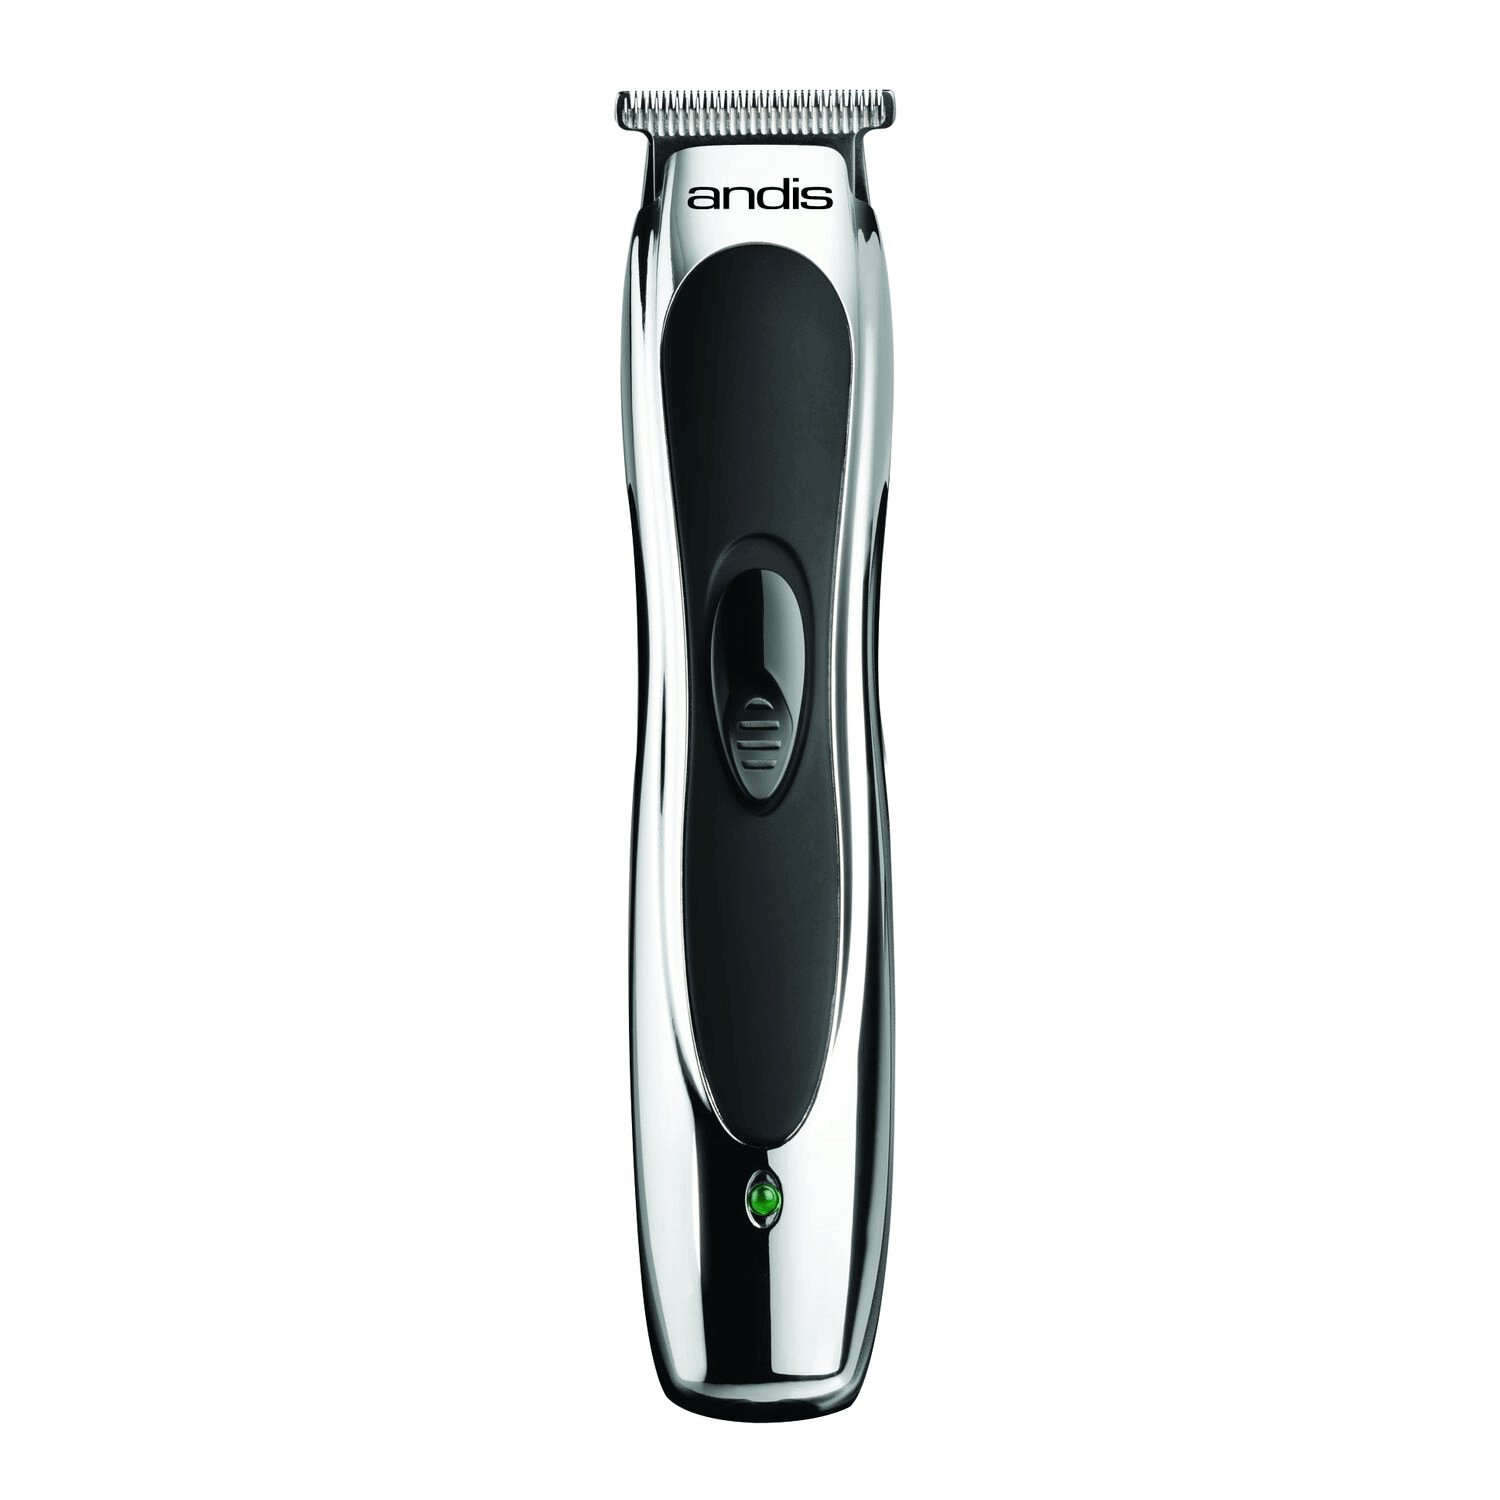 Sally Beauty coupon: Andis Slimline II Trimmer | Silver | Sally Beauty